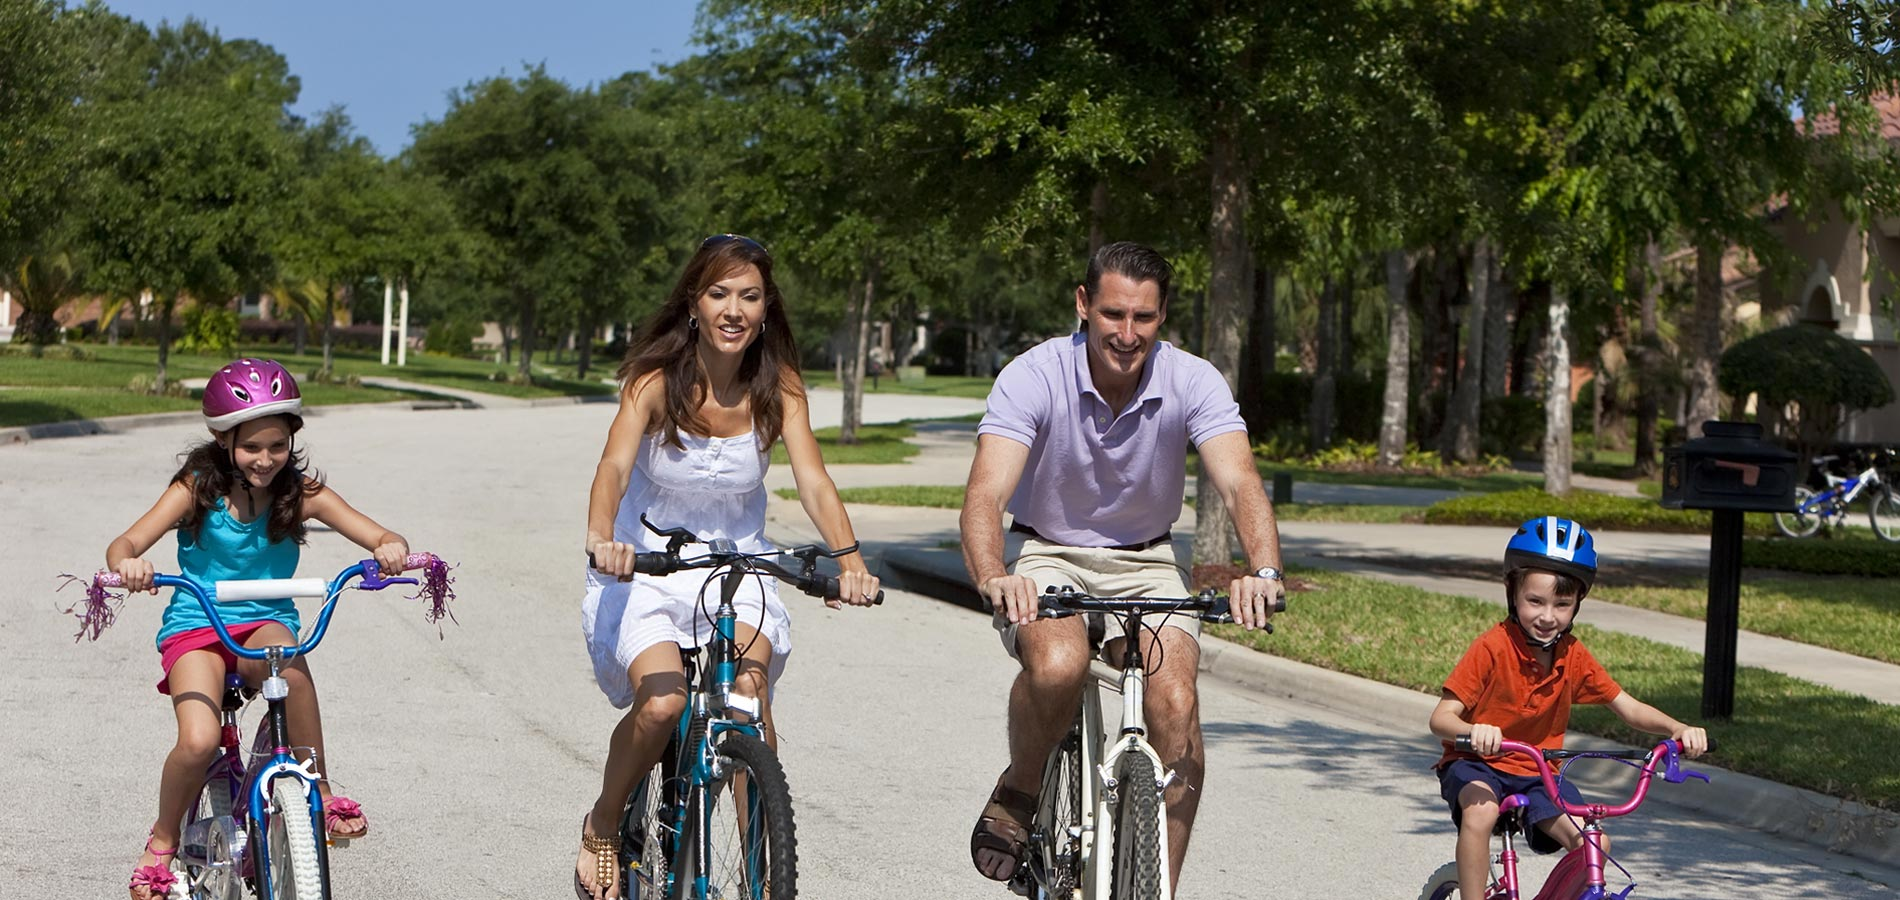 Family biking in Julington Creek looking for homes for sale